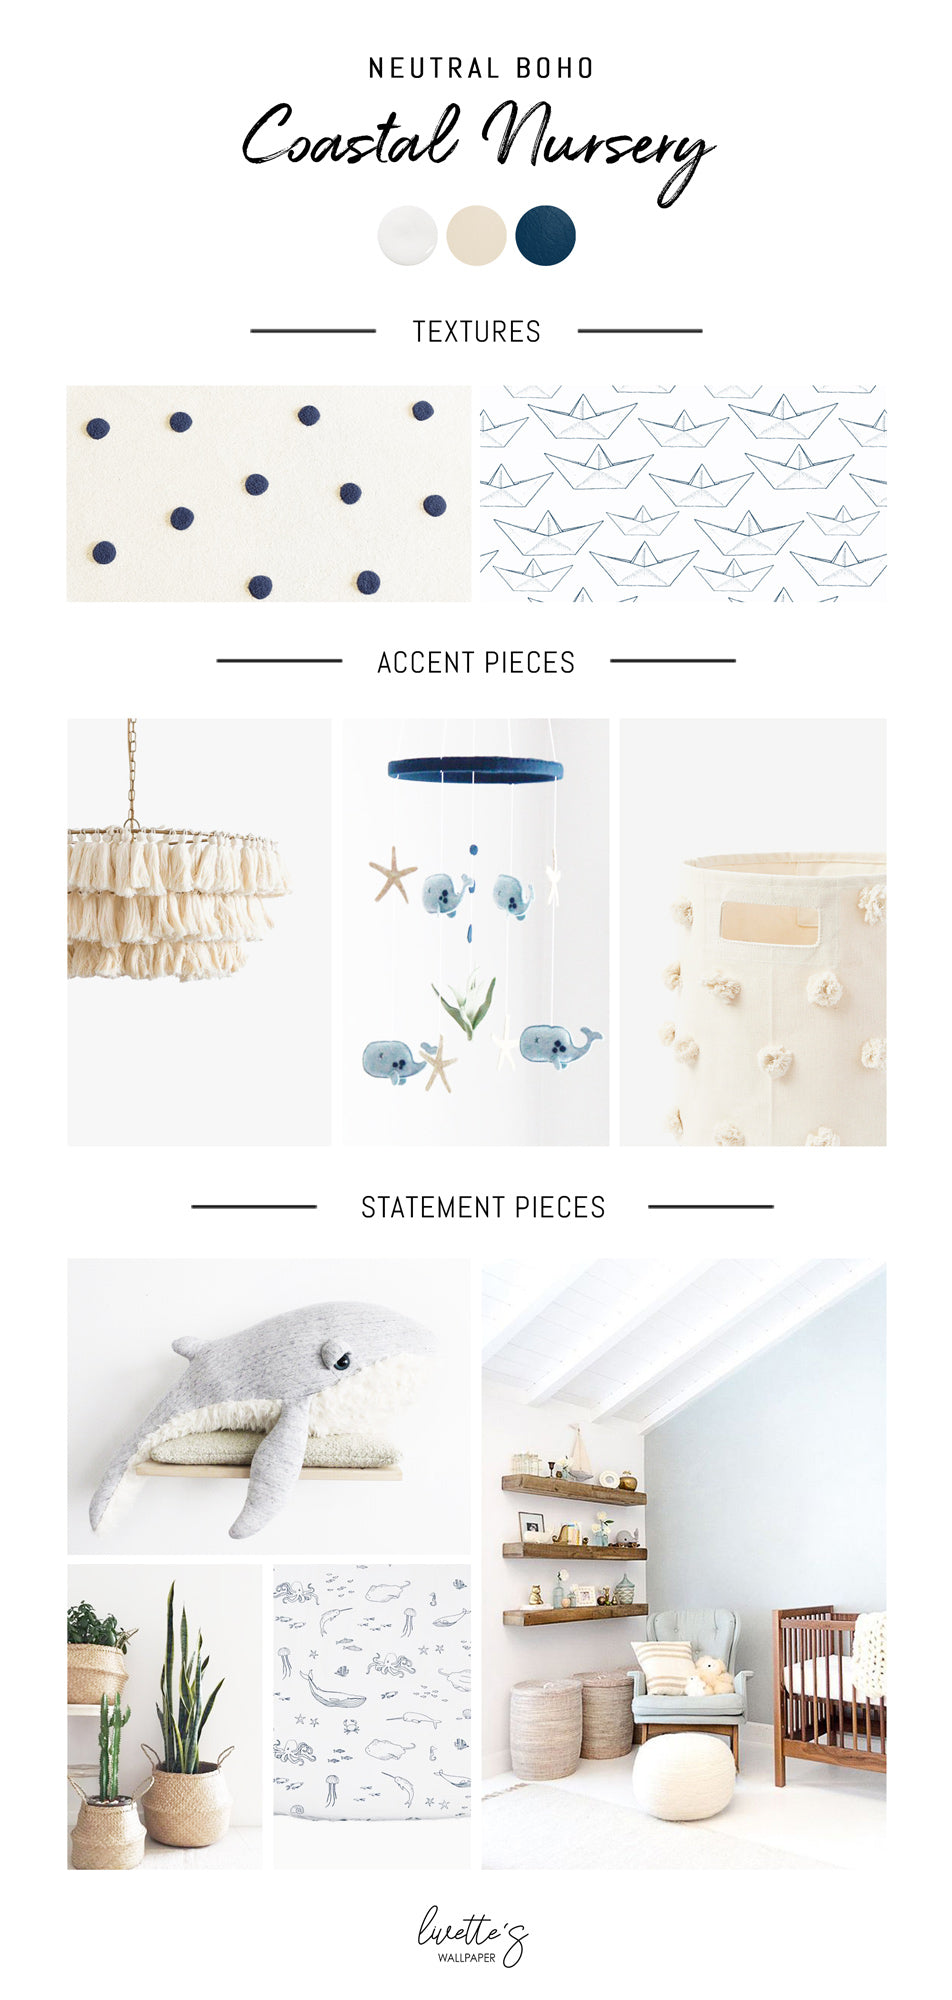 Neutral boho coastal nursery interior design inspiration mood board